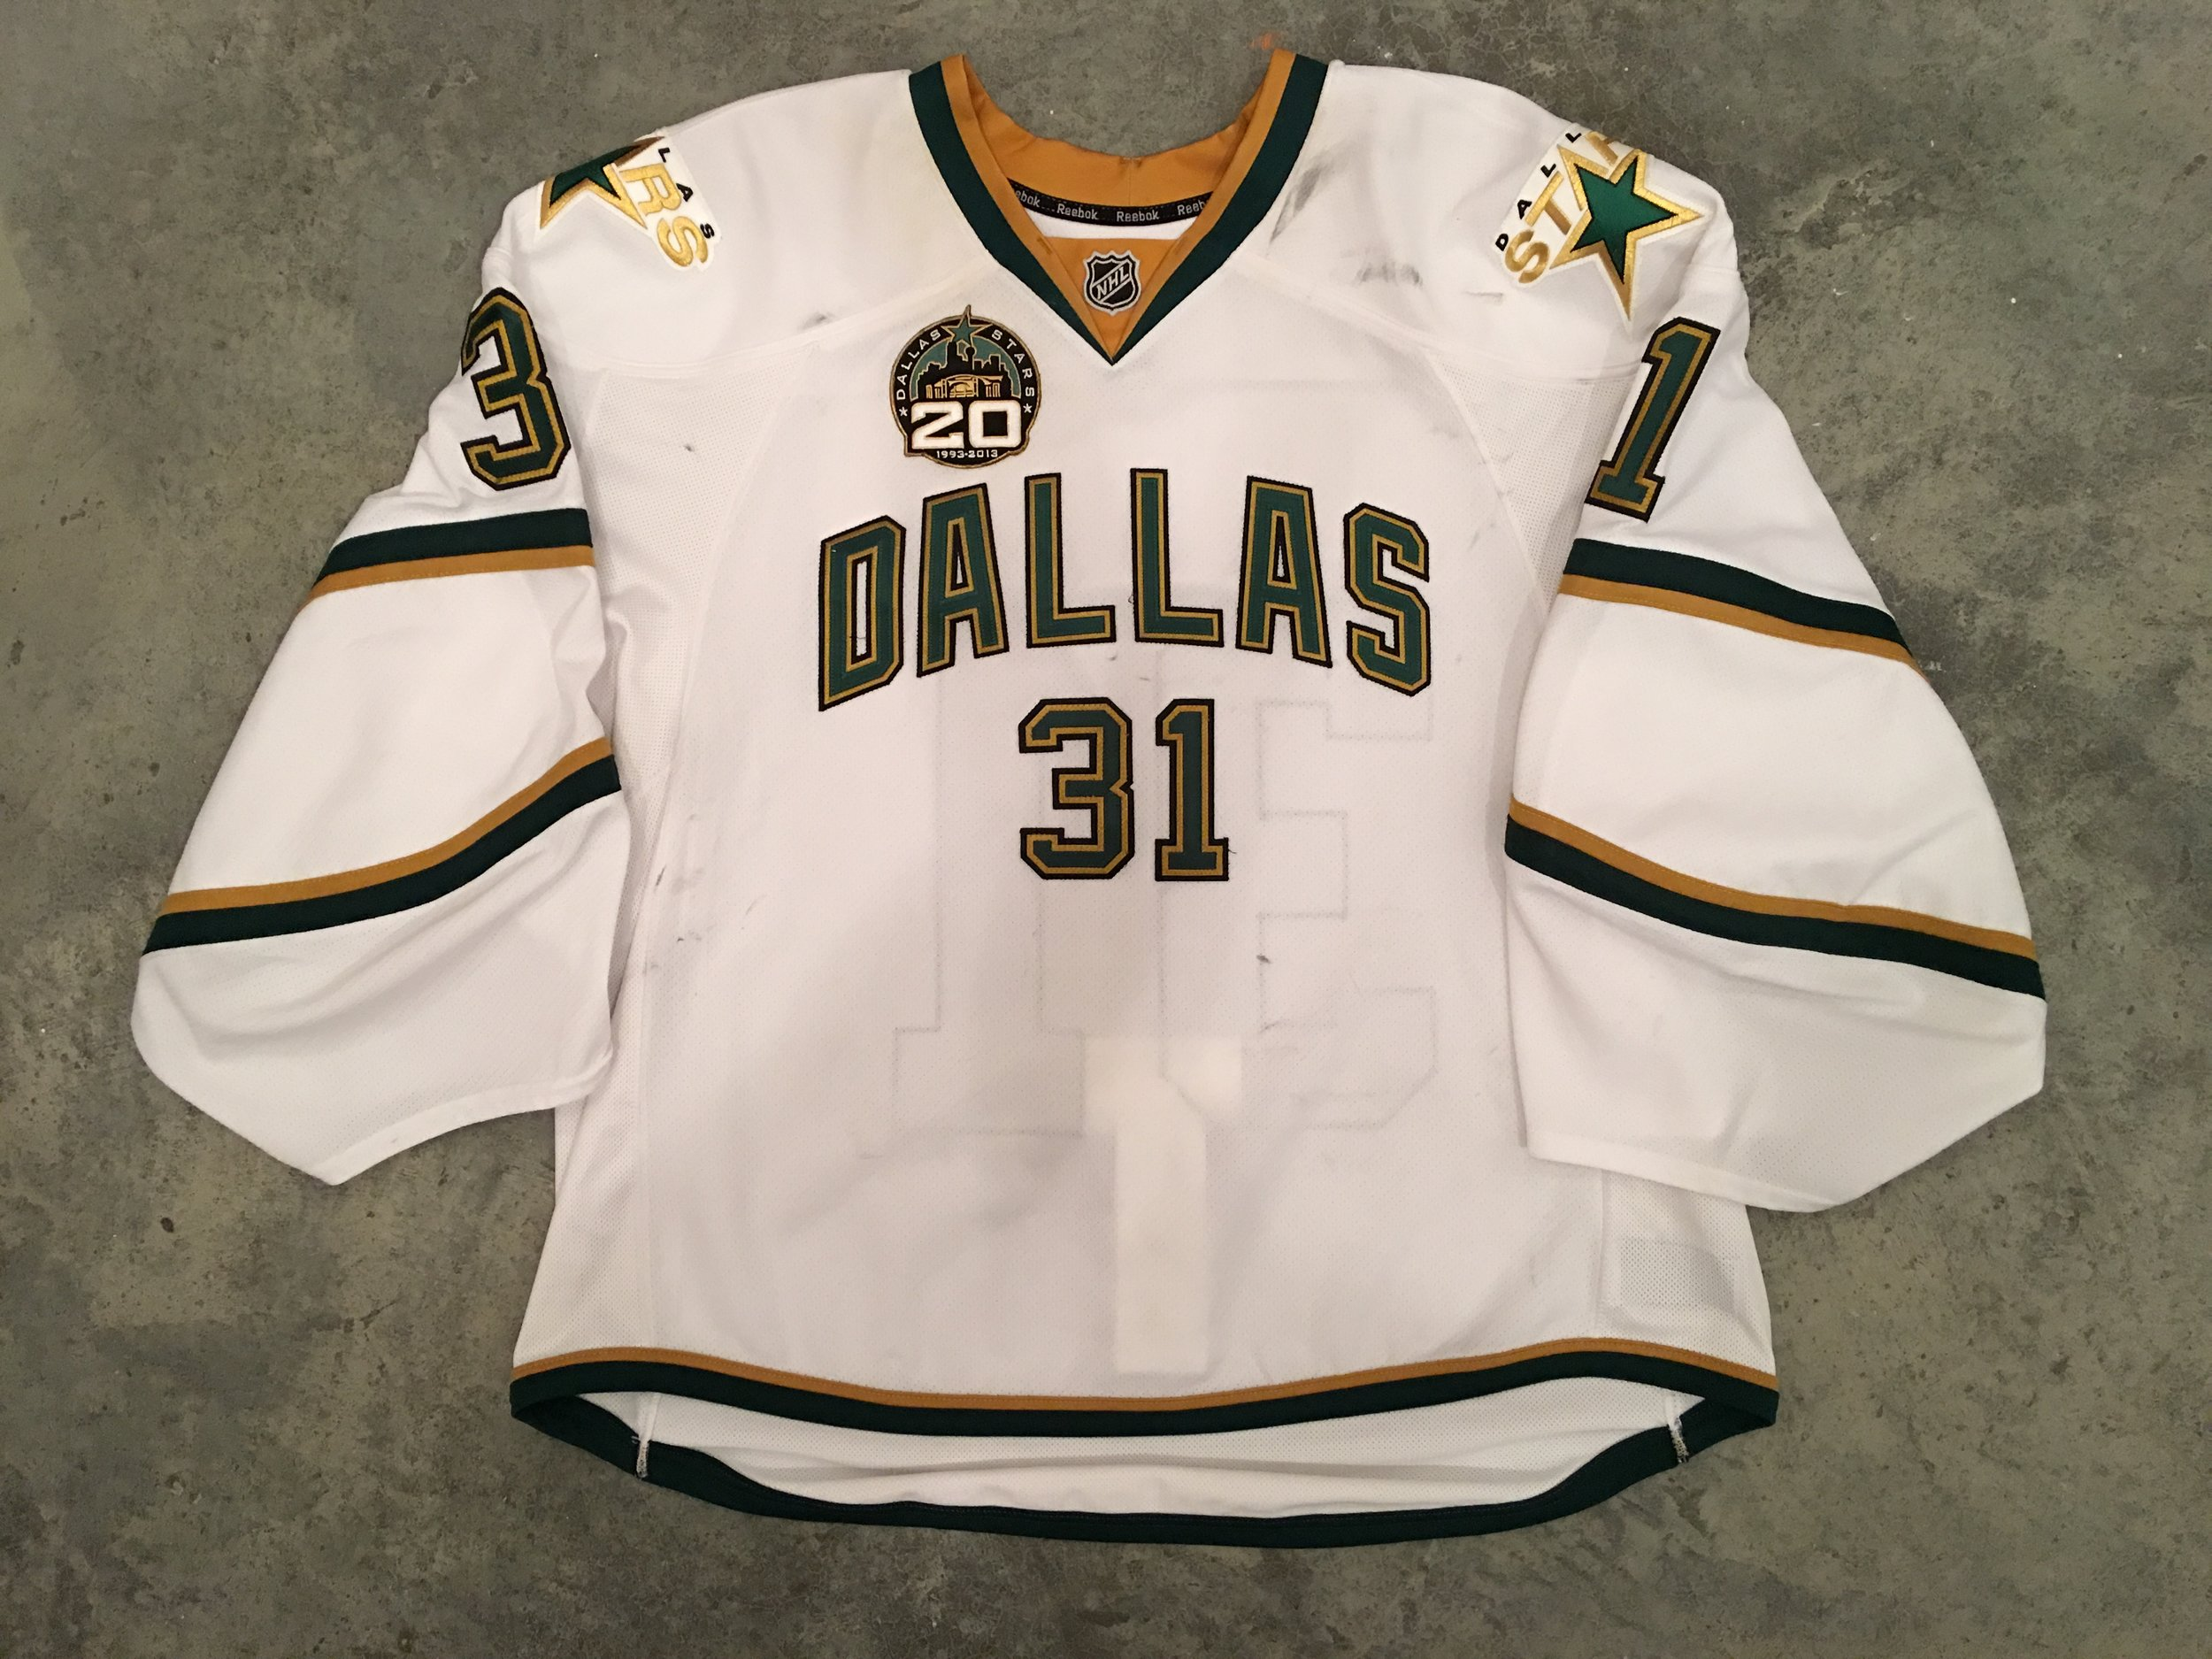 2013-14 Richard Bachman game worn road jersey with the Stars 20th anniversary patch